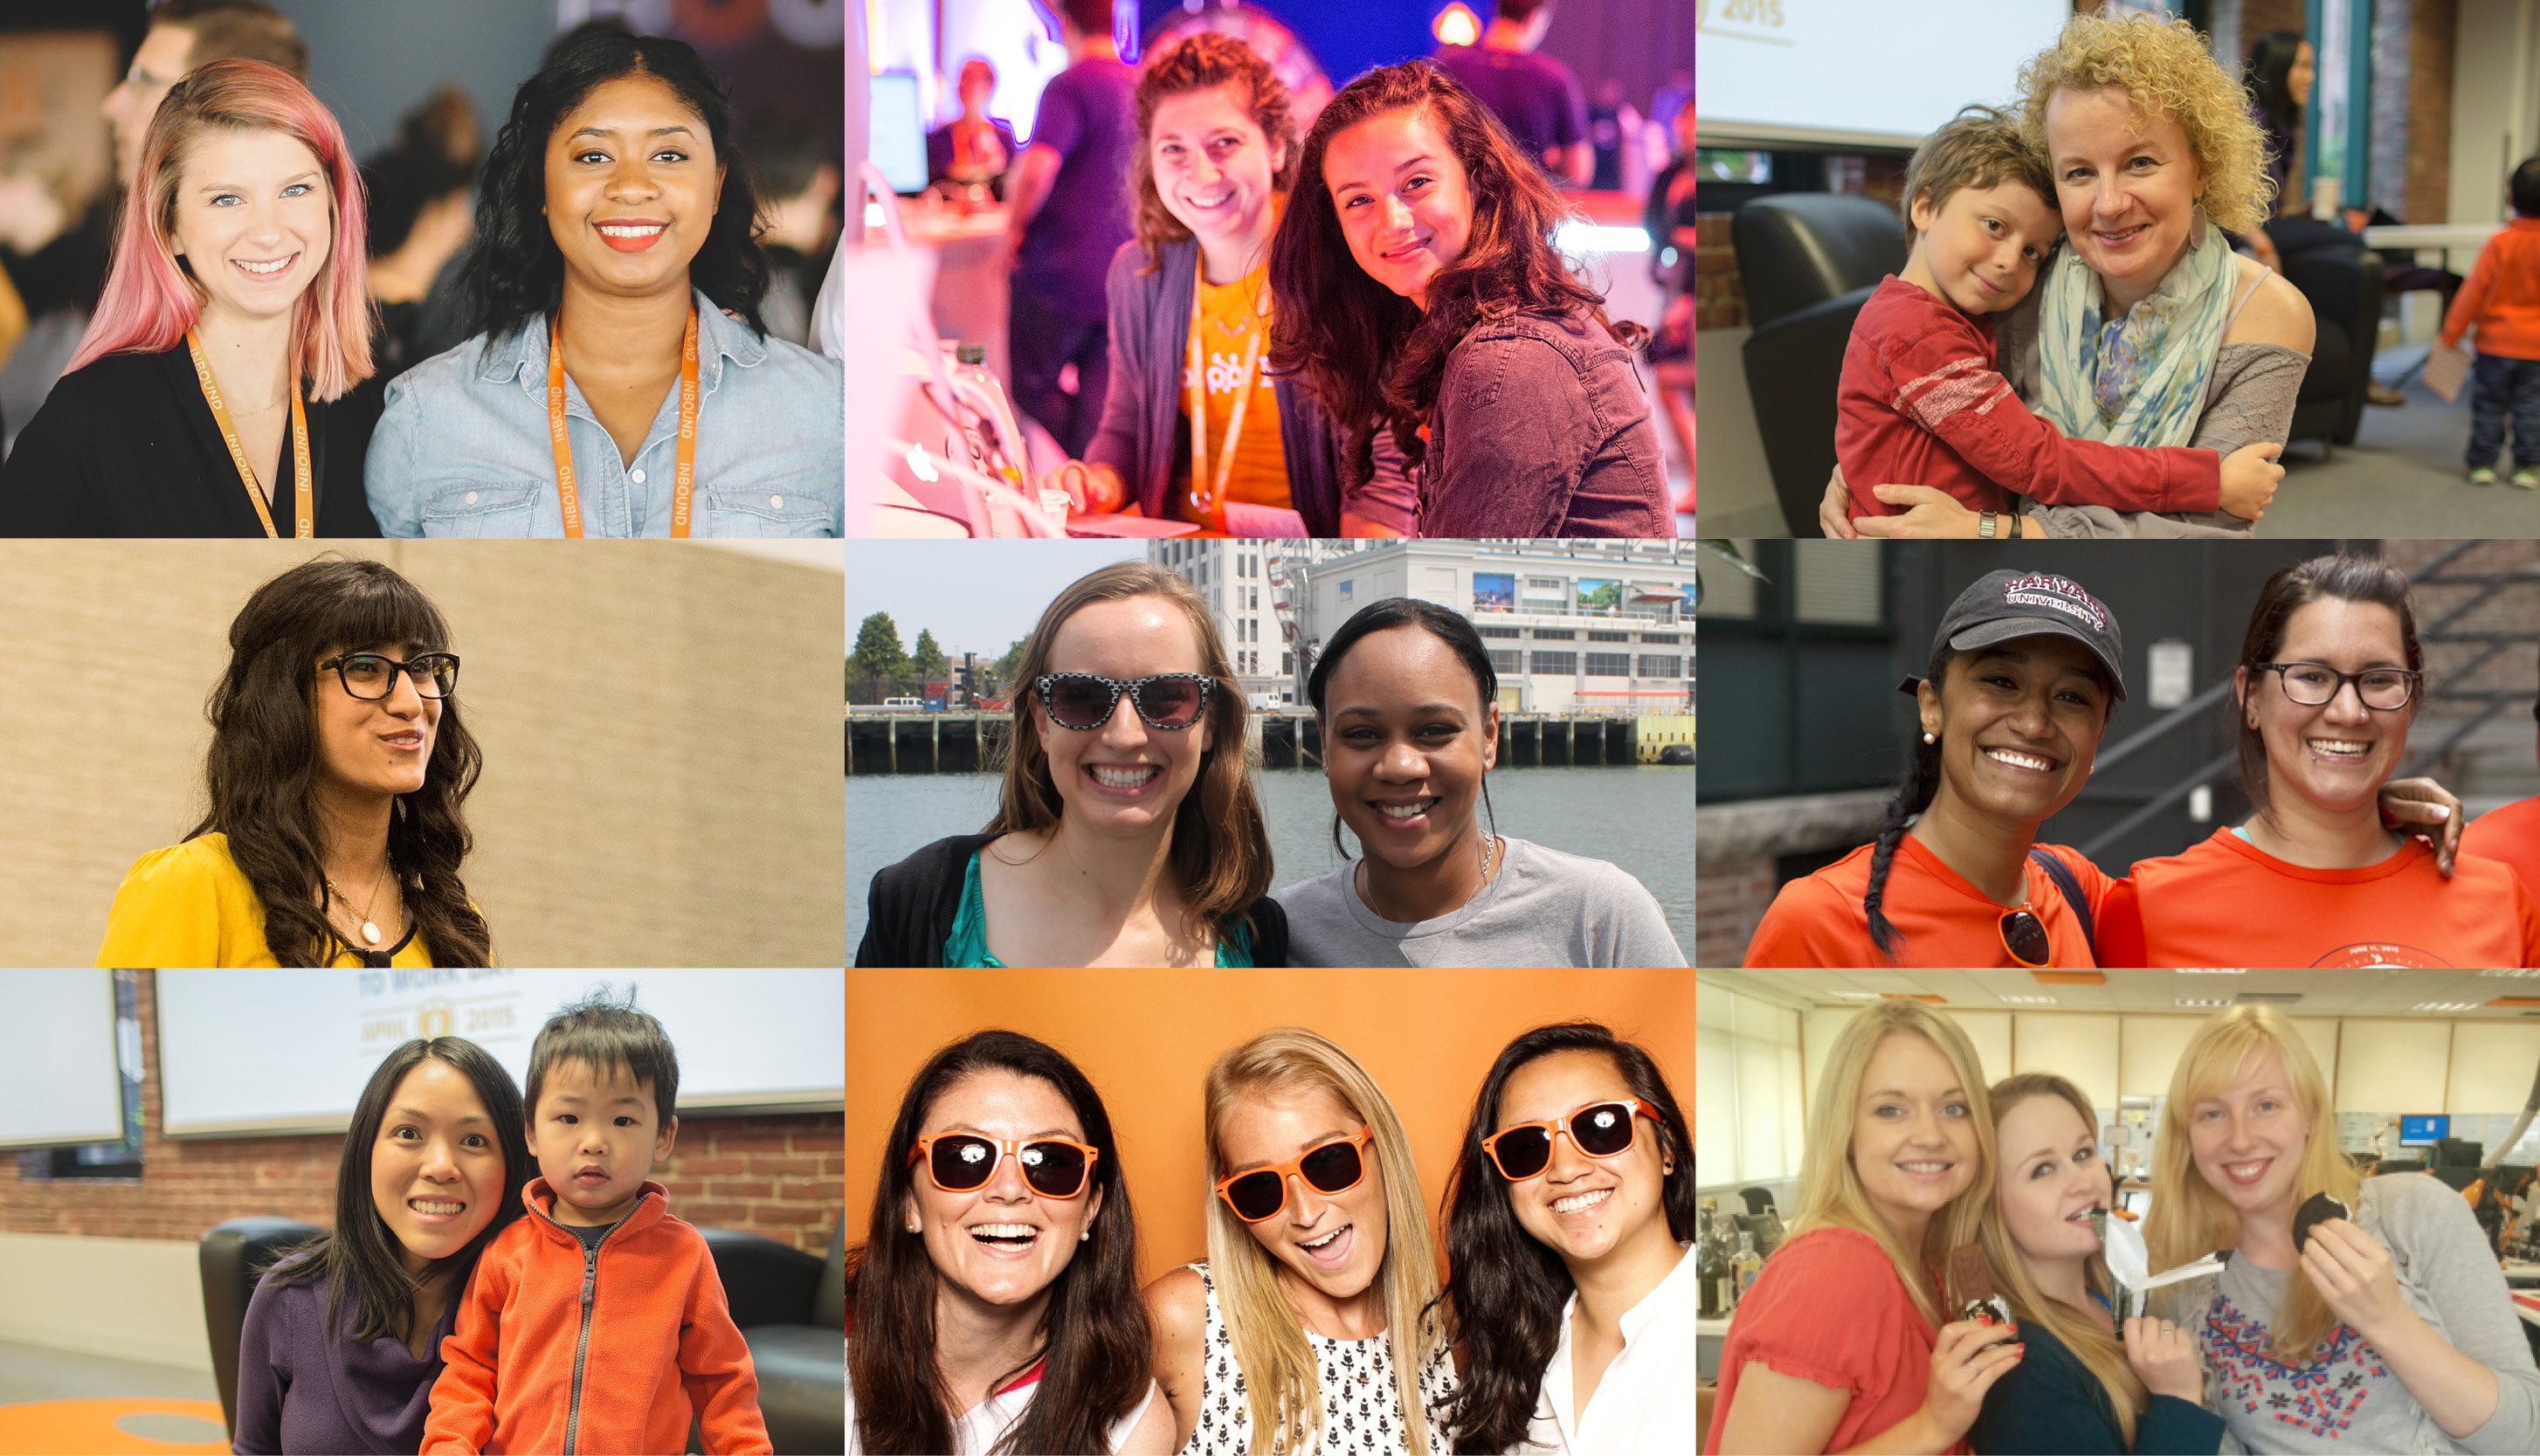 HubSpot Named a 2015 Best Workplace for Women by Fortune.com